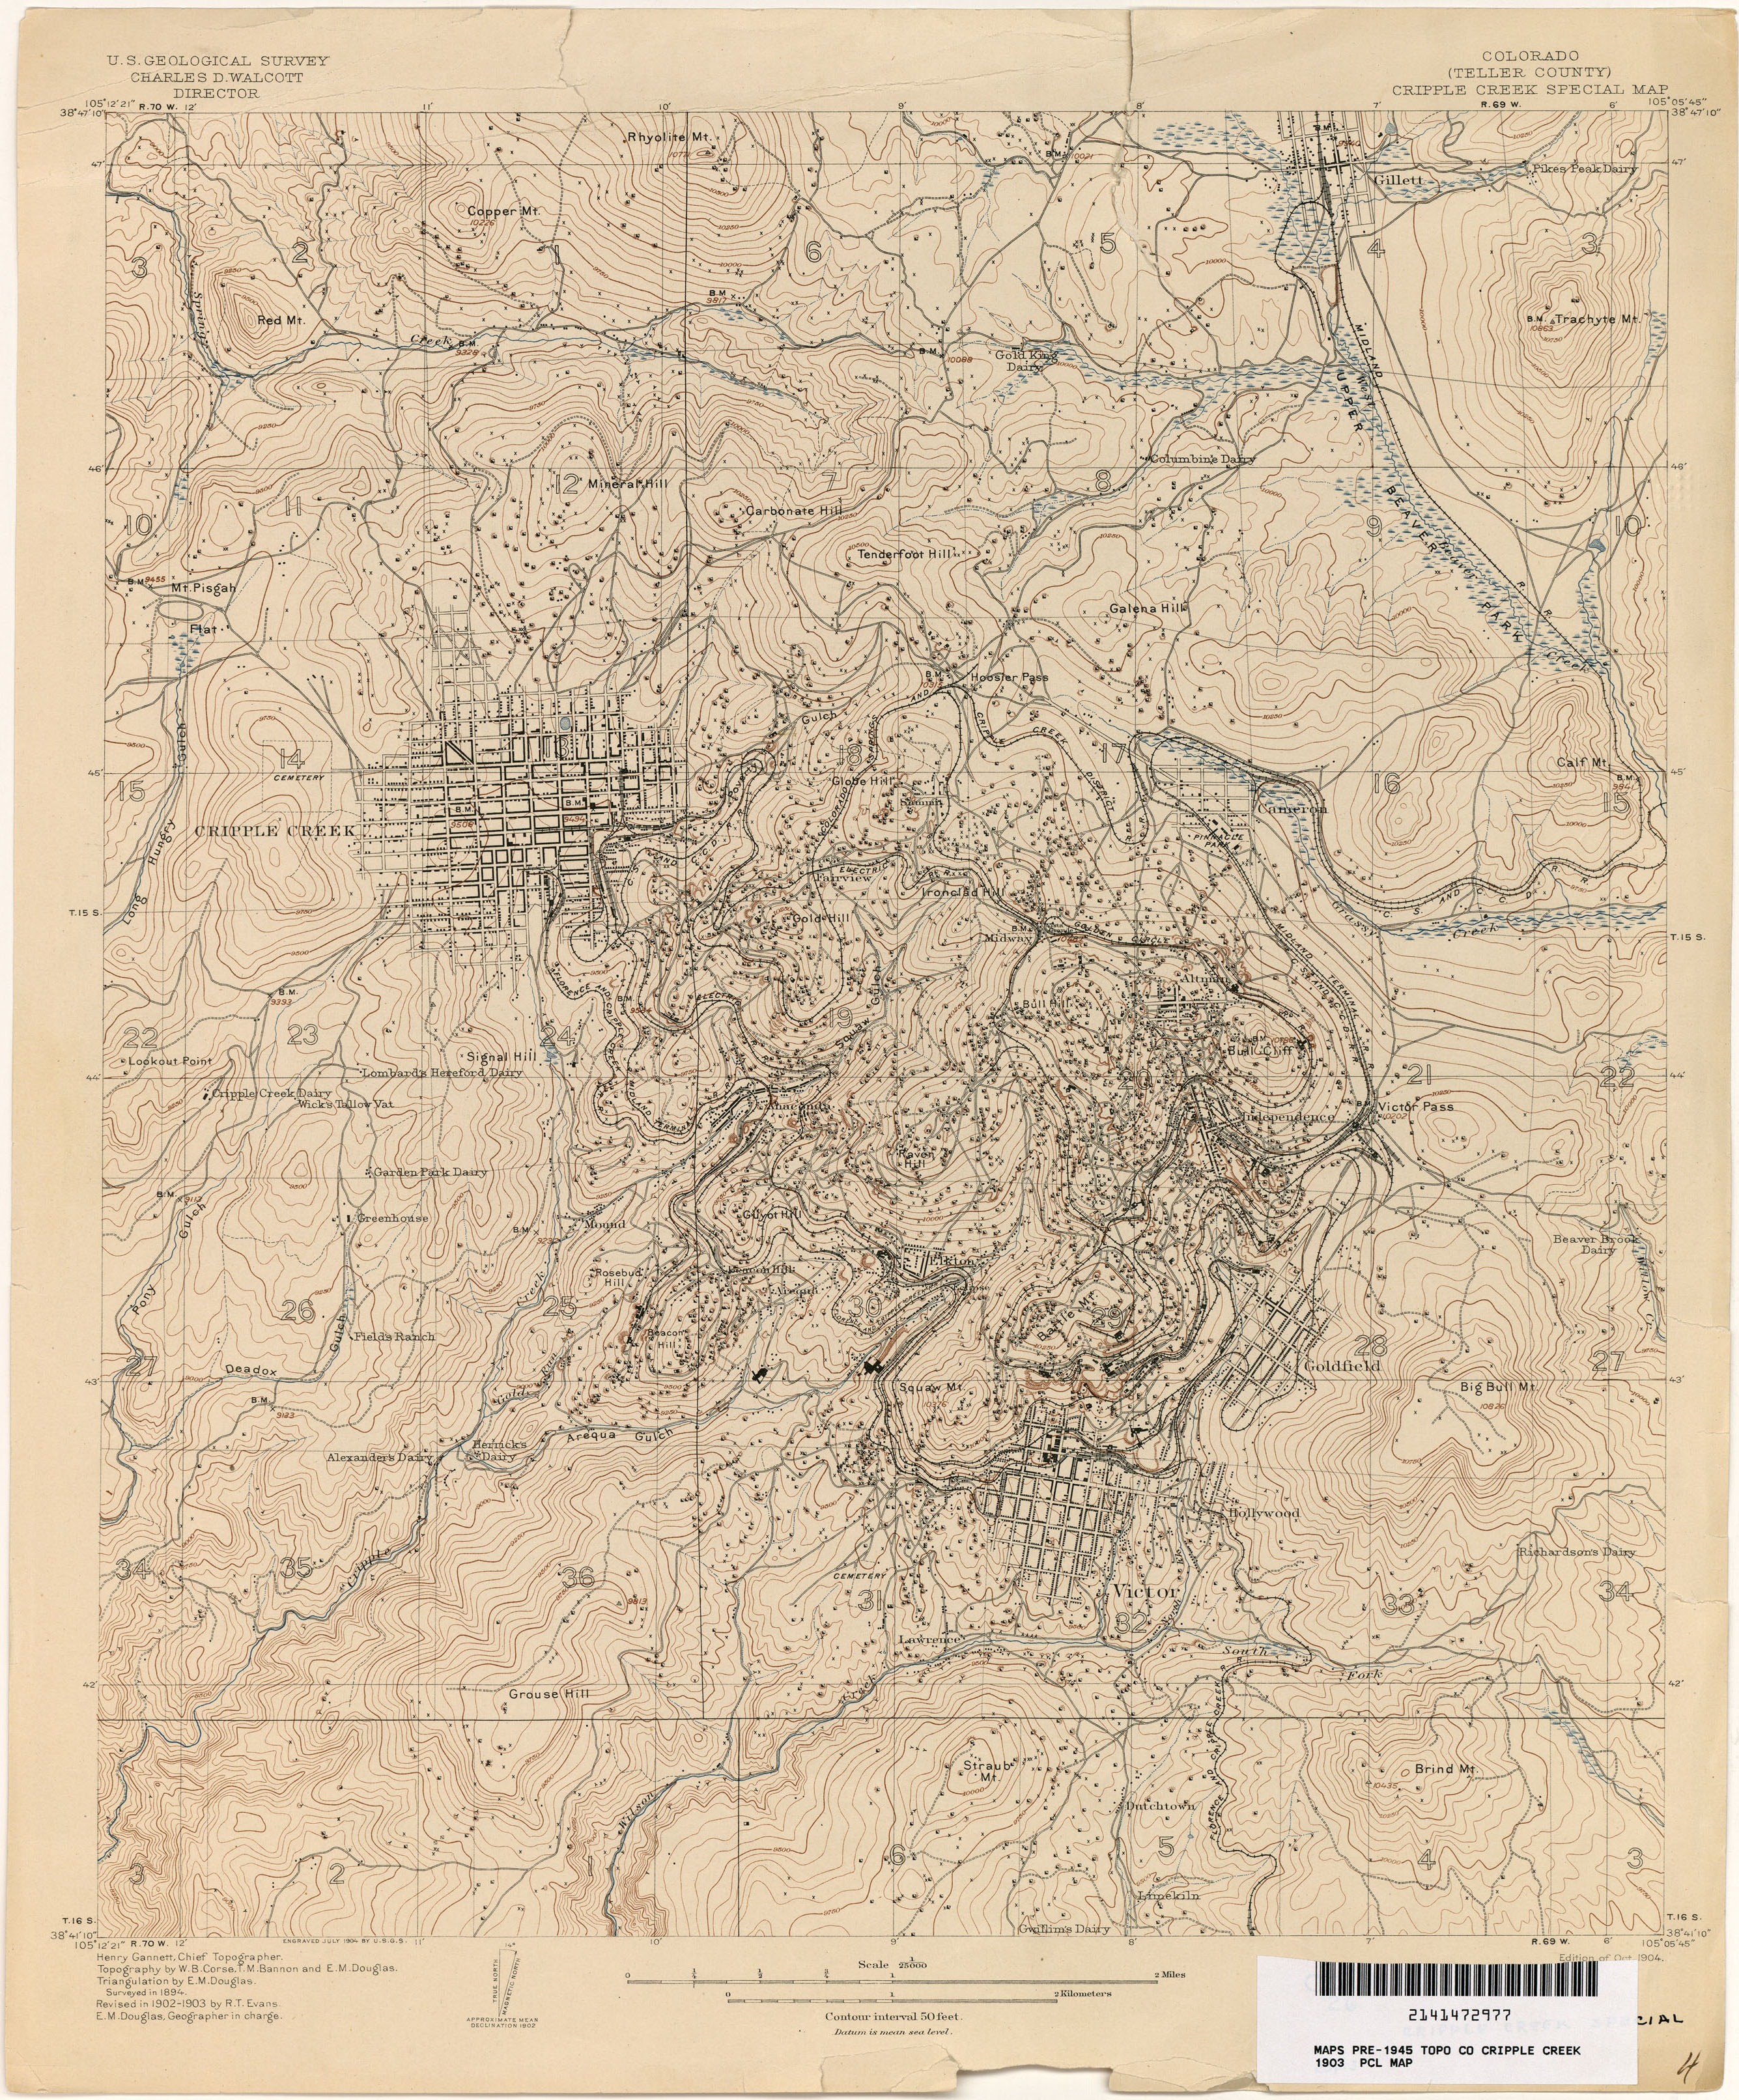 Topographic maps (topos) - Maps and Geospatial Information ... on topo map of montana, blank map of montana, acton montana, physical map of montana, manufacturing map of montana, harlowton montana, political map of montana, lodge grass montana, funny map of montana, molt montana, fishtail montana, lame deer montana, terrain map of montana, hysham montana, relief map montana, contour map of montana, 3d map of montana, pryor montana, broadview montana, detailed map of montana,